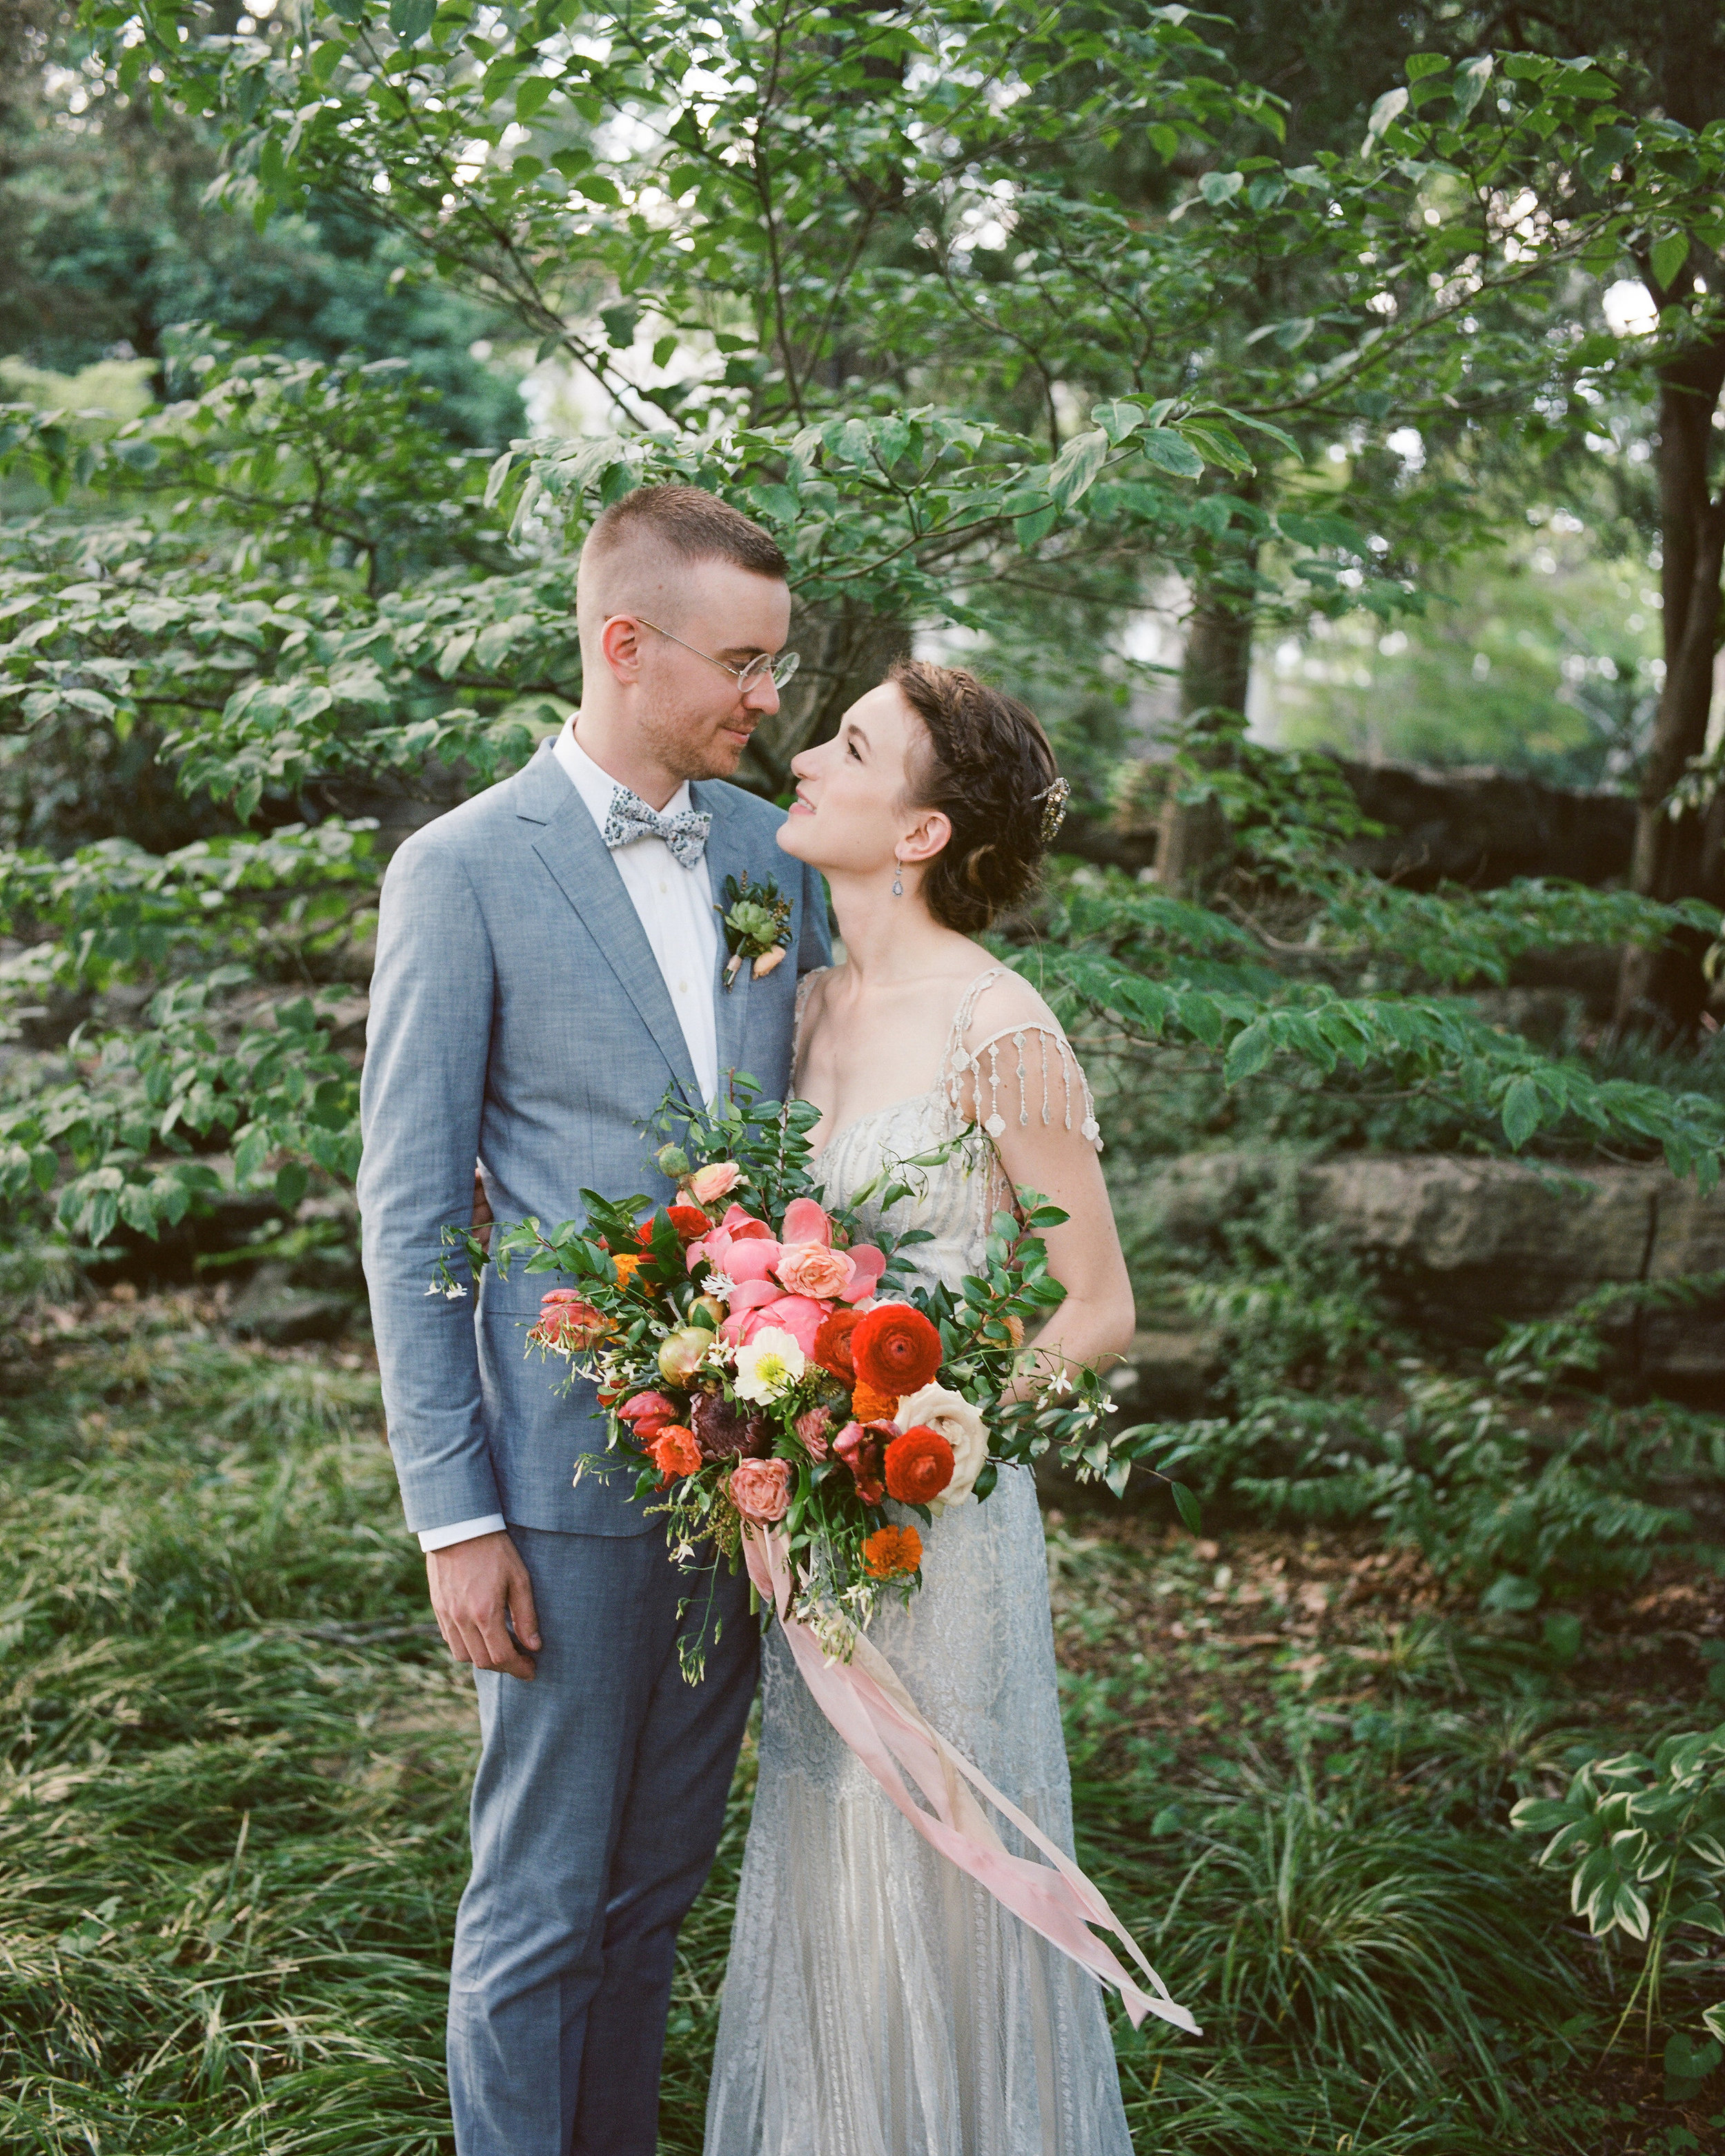 Lush, brightly colored bridal bouquet with ranunculus, peonies, and Icelandic poppies, silvery blue wedding dress // Nashville Wedding Florist